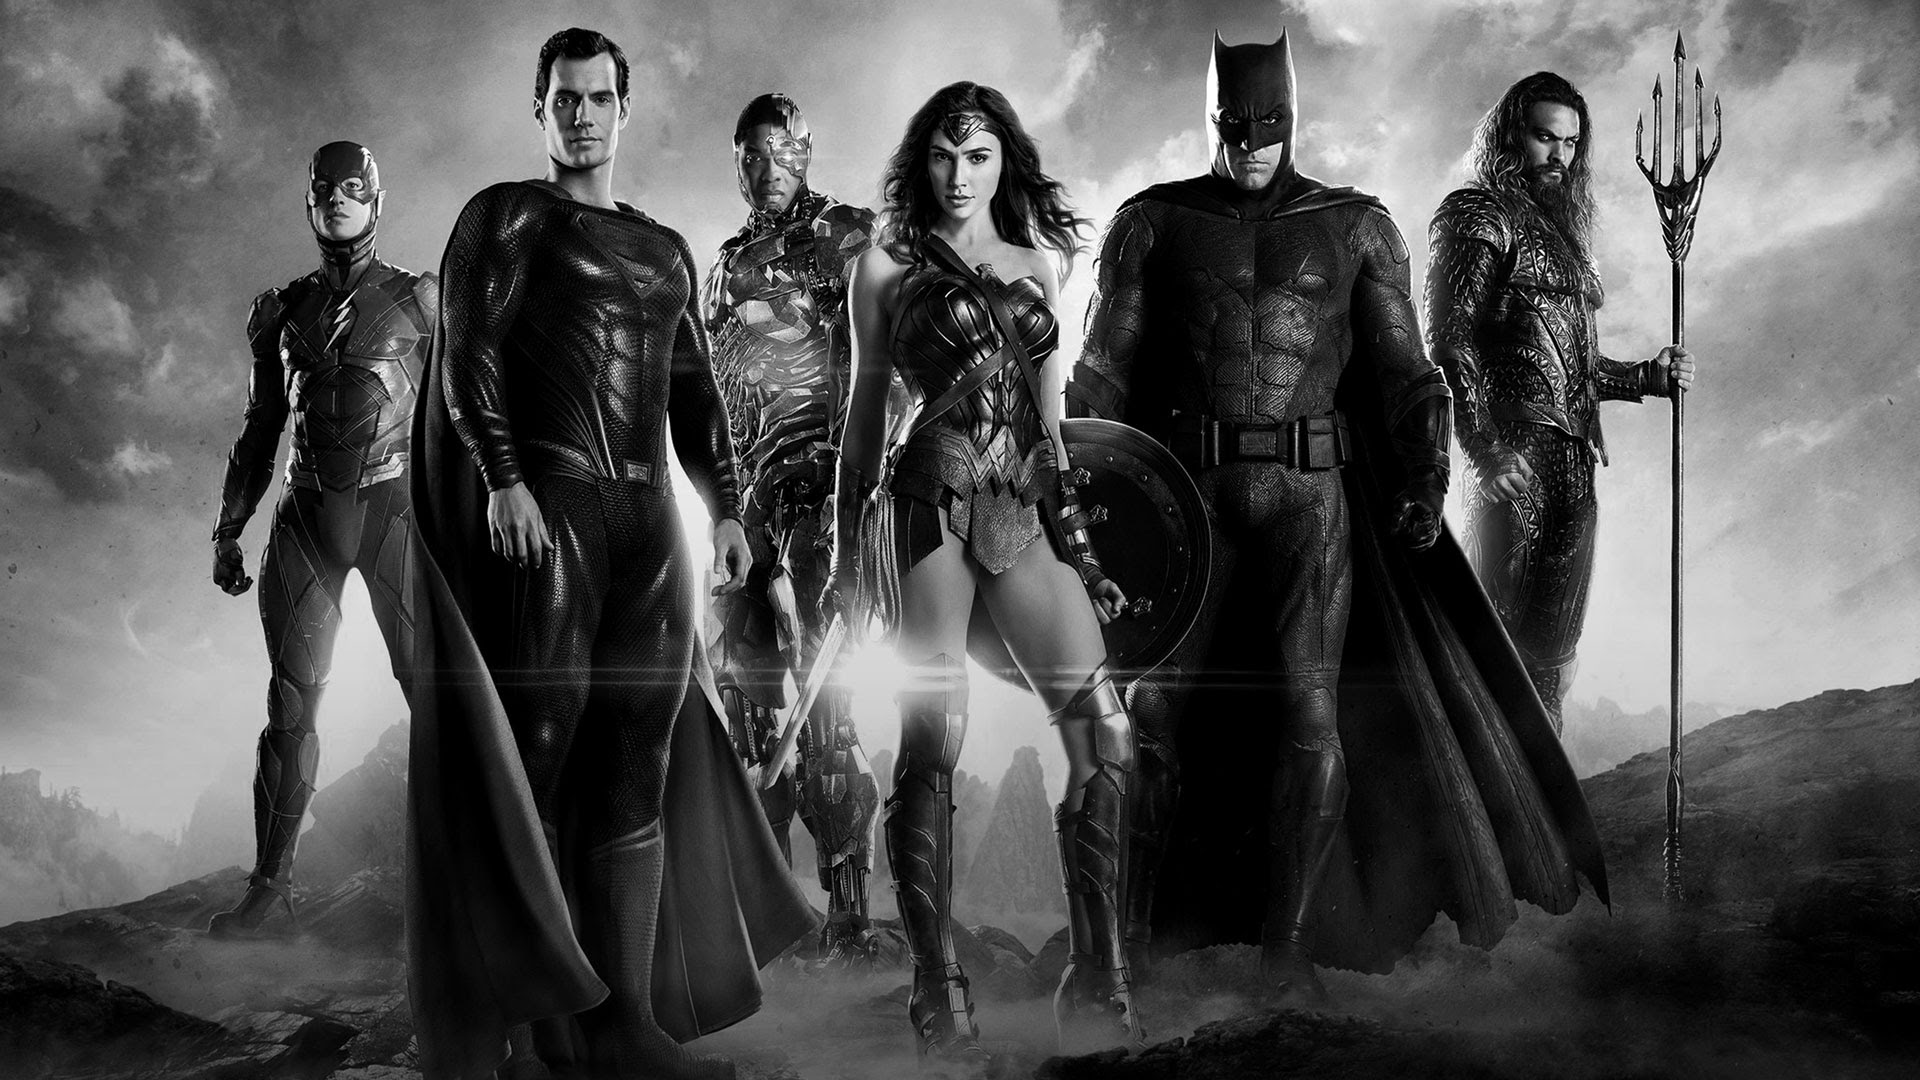 Zack Snyder's director's cut of `Justice League.` (Image courtesy of WarnerMedia)